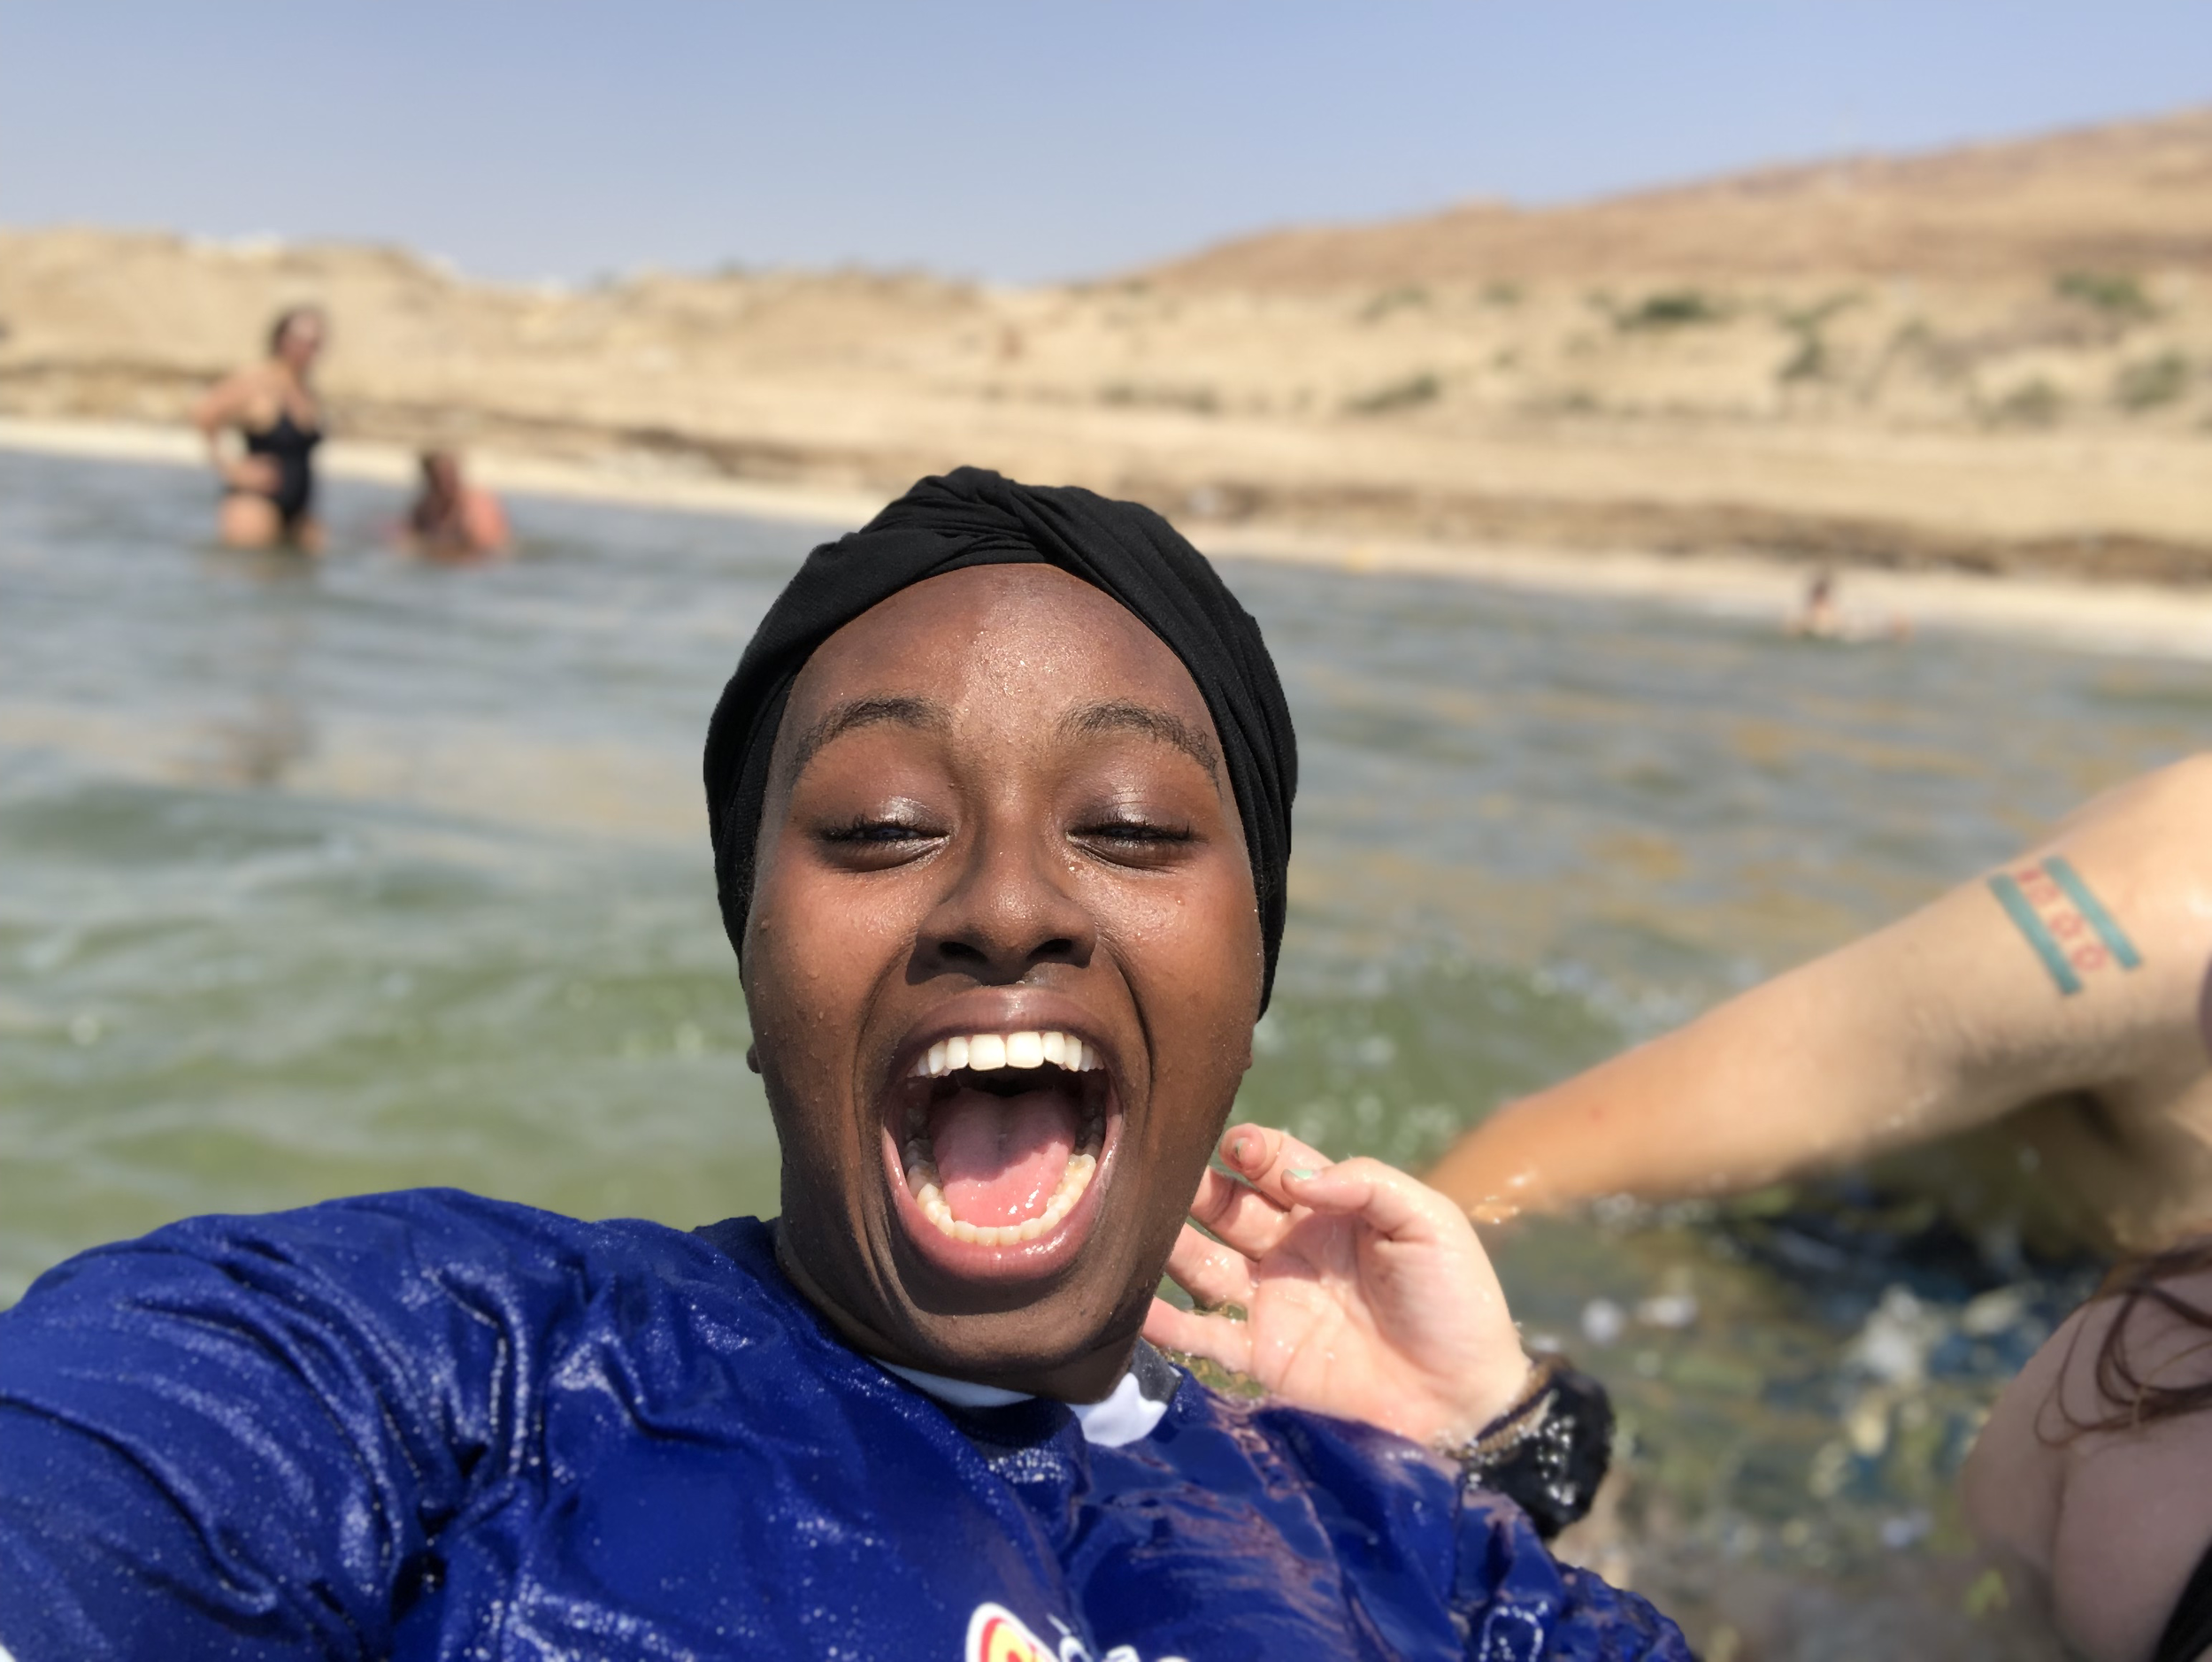 Salih travels to the Dead Sea, a salt lake between Israel and Jordan. Photo Courtesy: Ghufran Salih